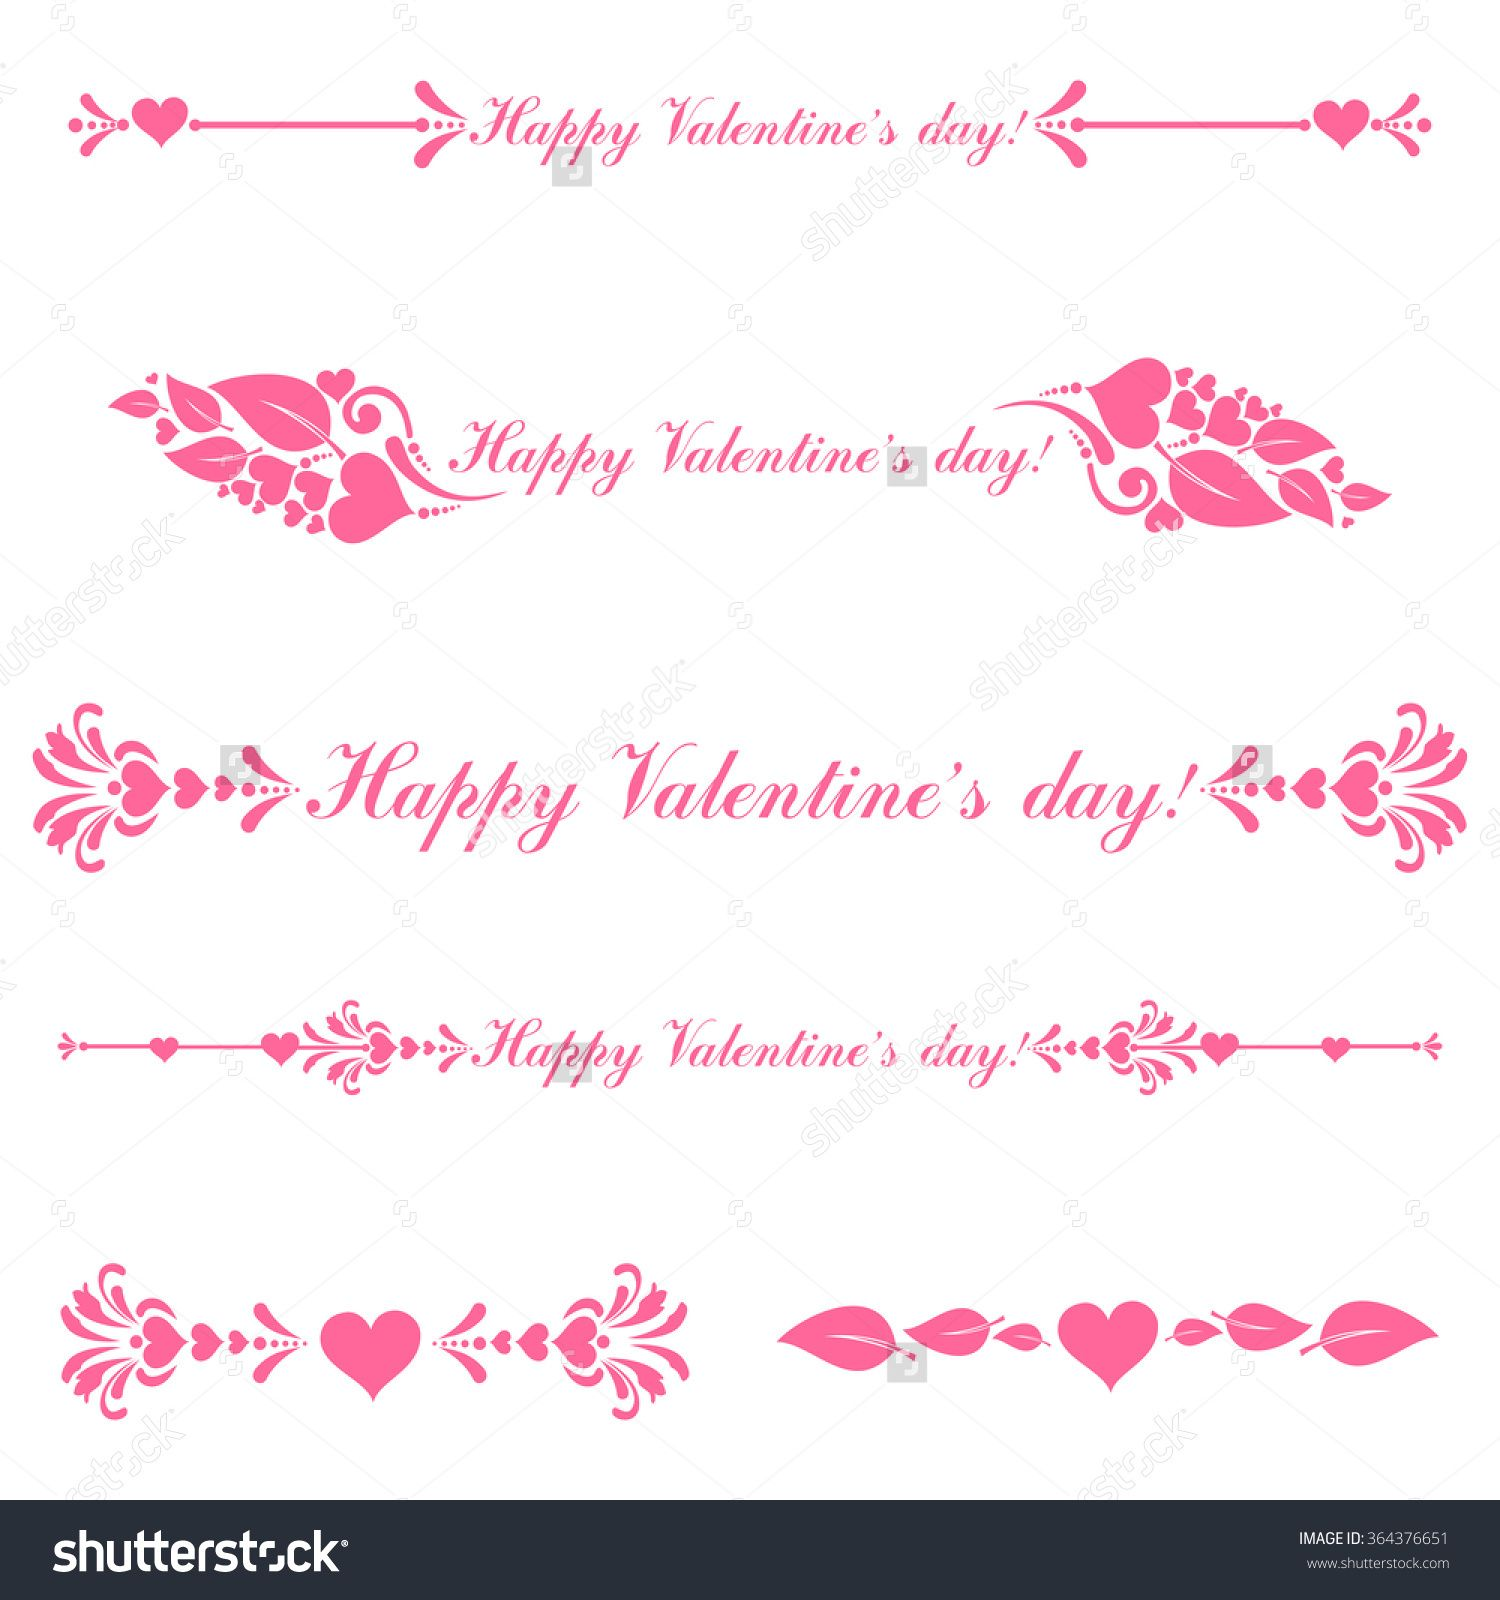 Elegant royal frame with crown vector colourbox - Vector Decorative Design Elements And Page Decor Happy Valentine Day Decor